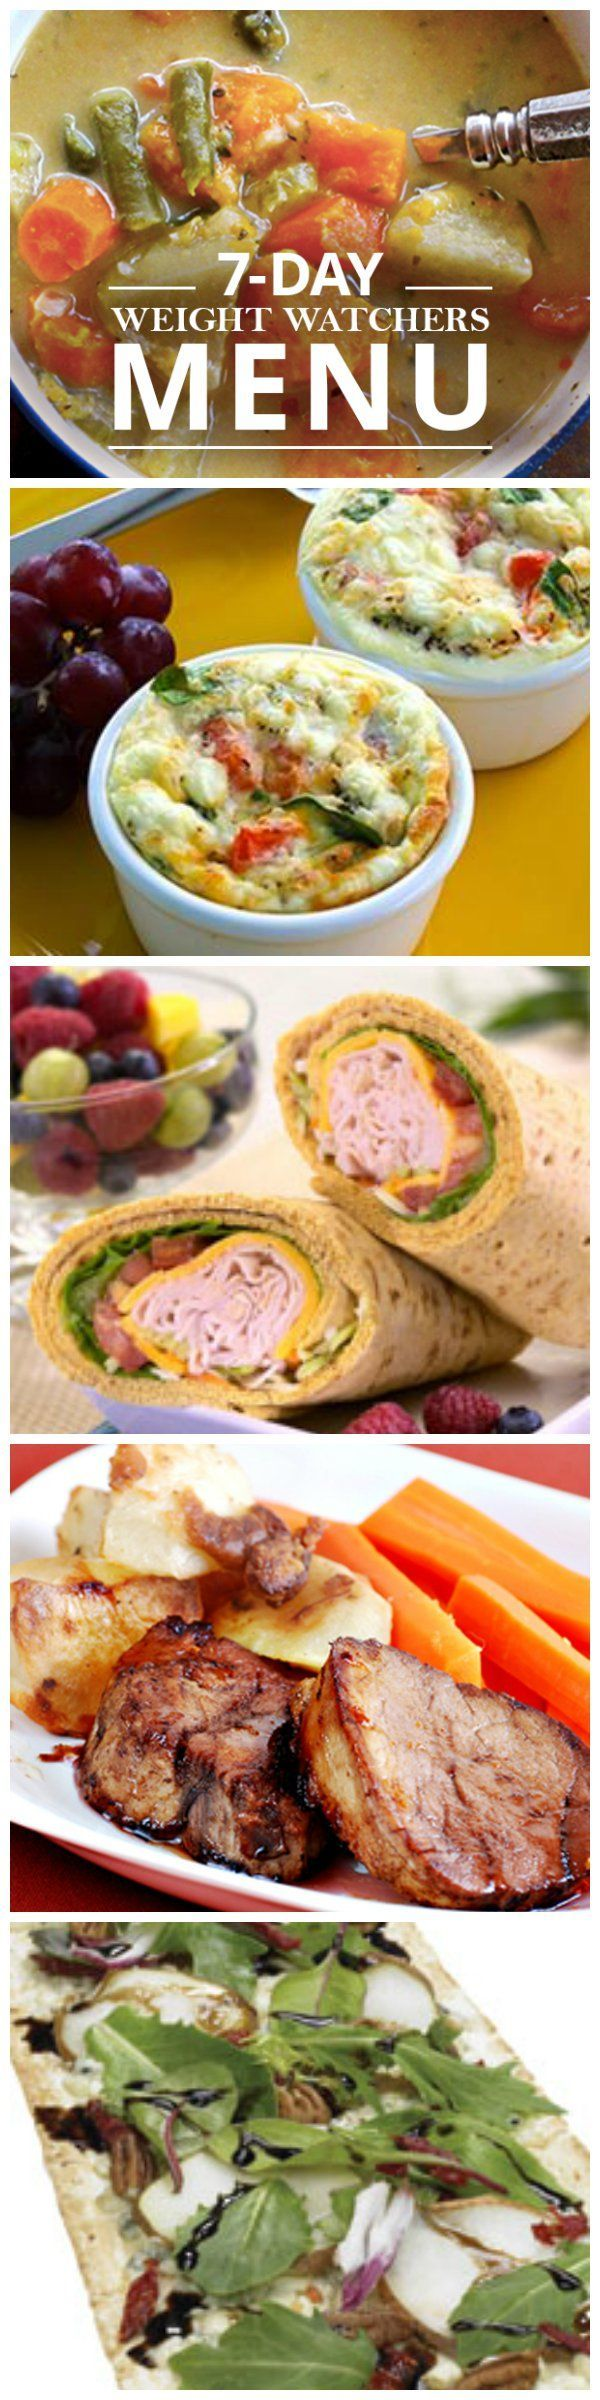 This 7 Day Weight Watchers Menu is AMAZING!  #ww #weightwatchers